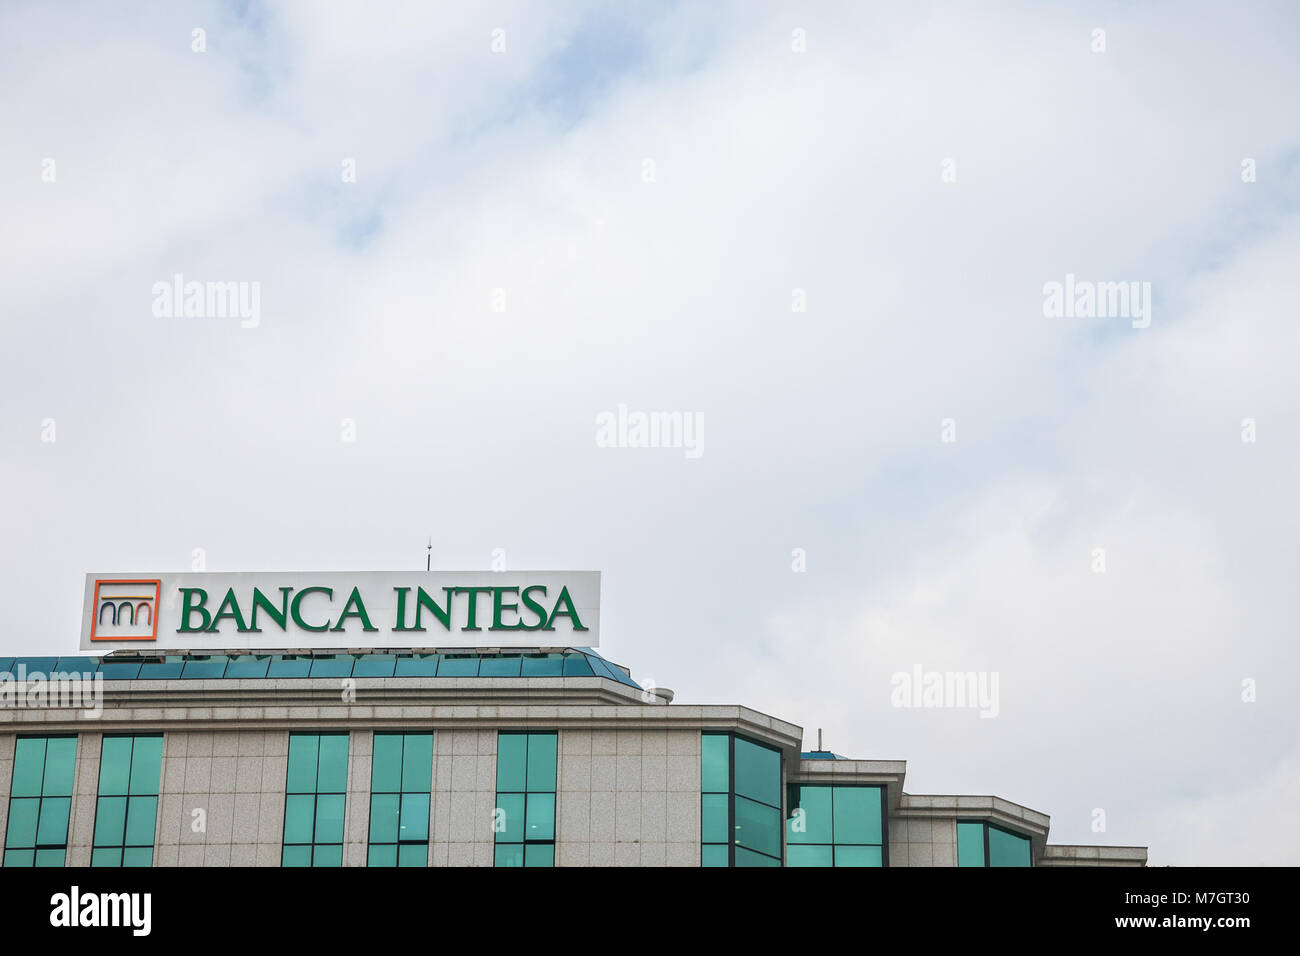 BELGRADE, SERBIA - MARCH 2, 2018: Banca Intesa logo on their main office for Serbia. Intesa SanPaolo is one of the - Stock Image